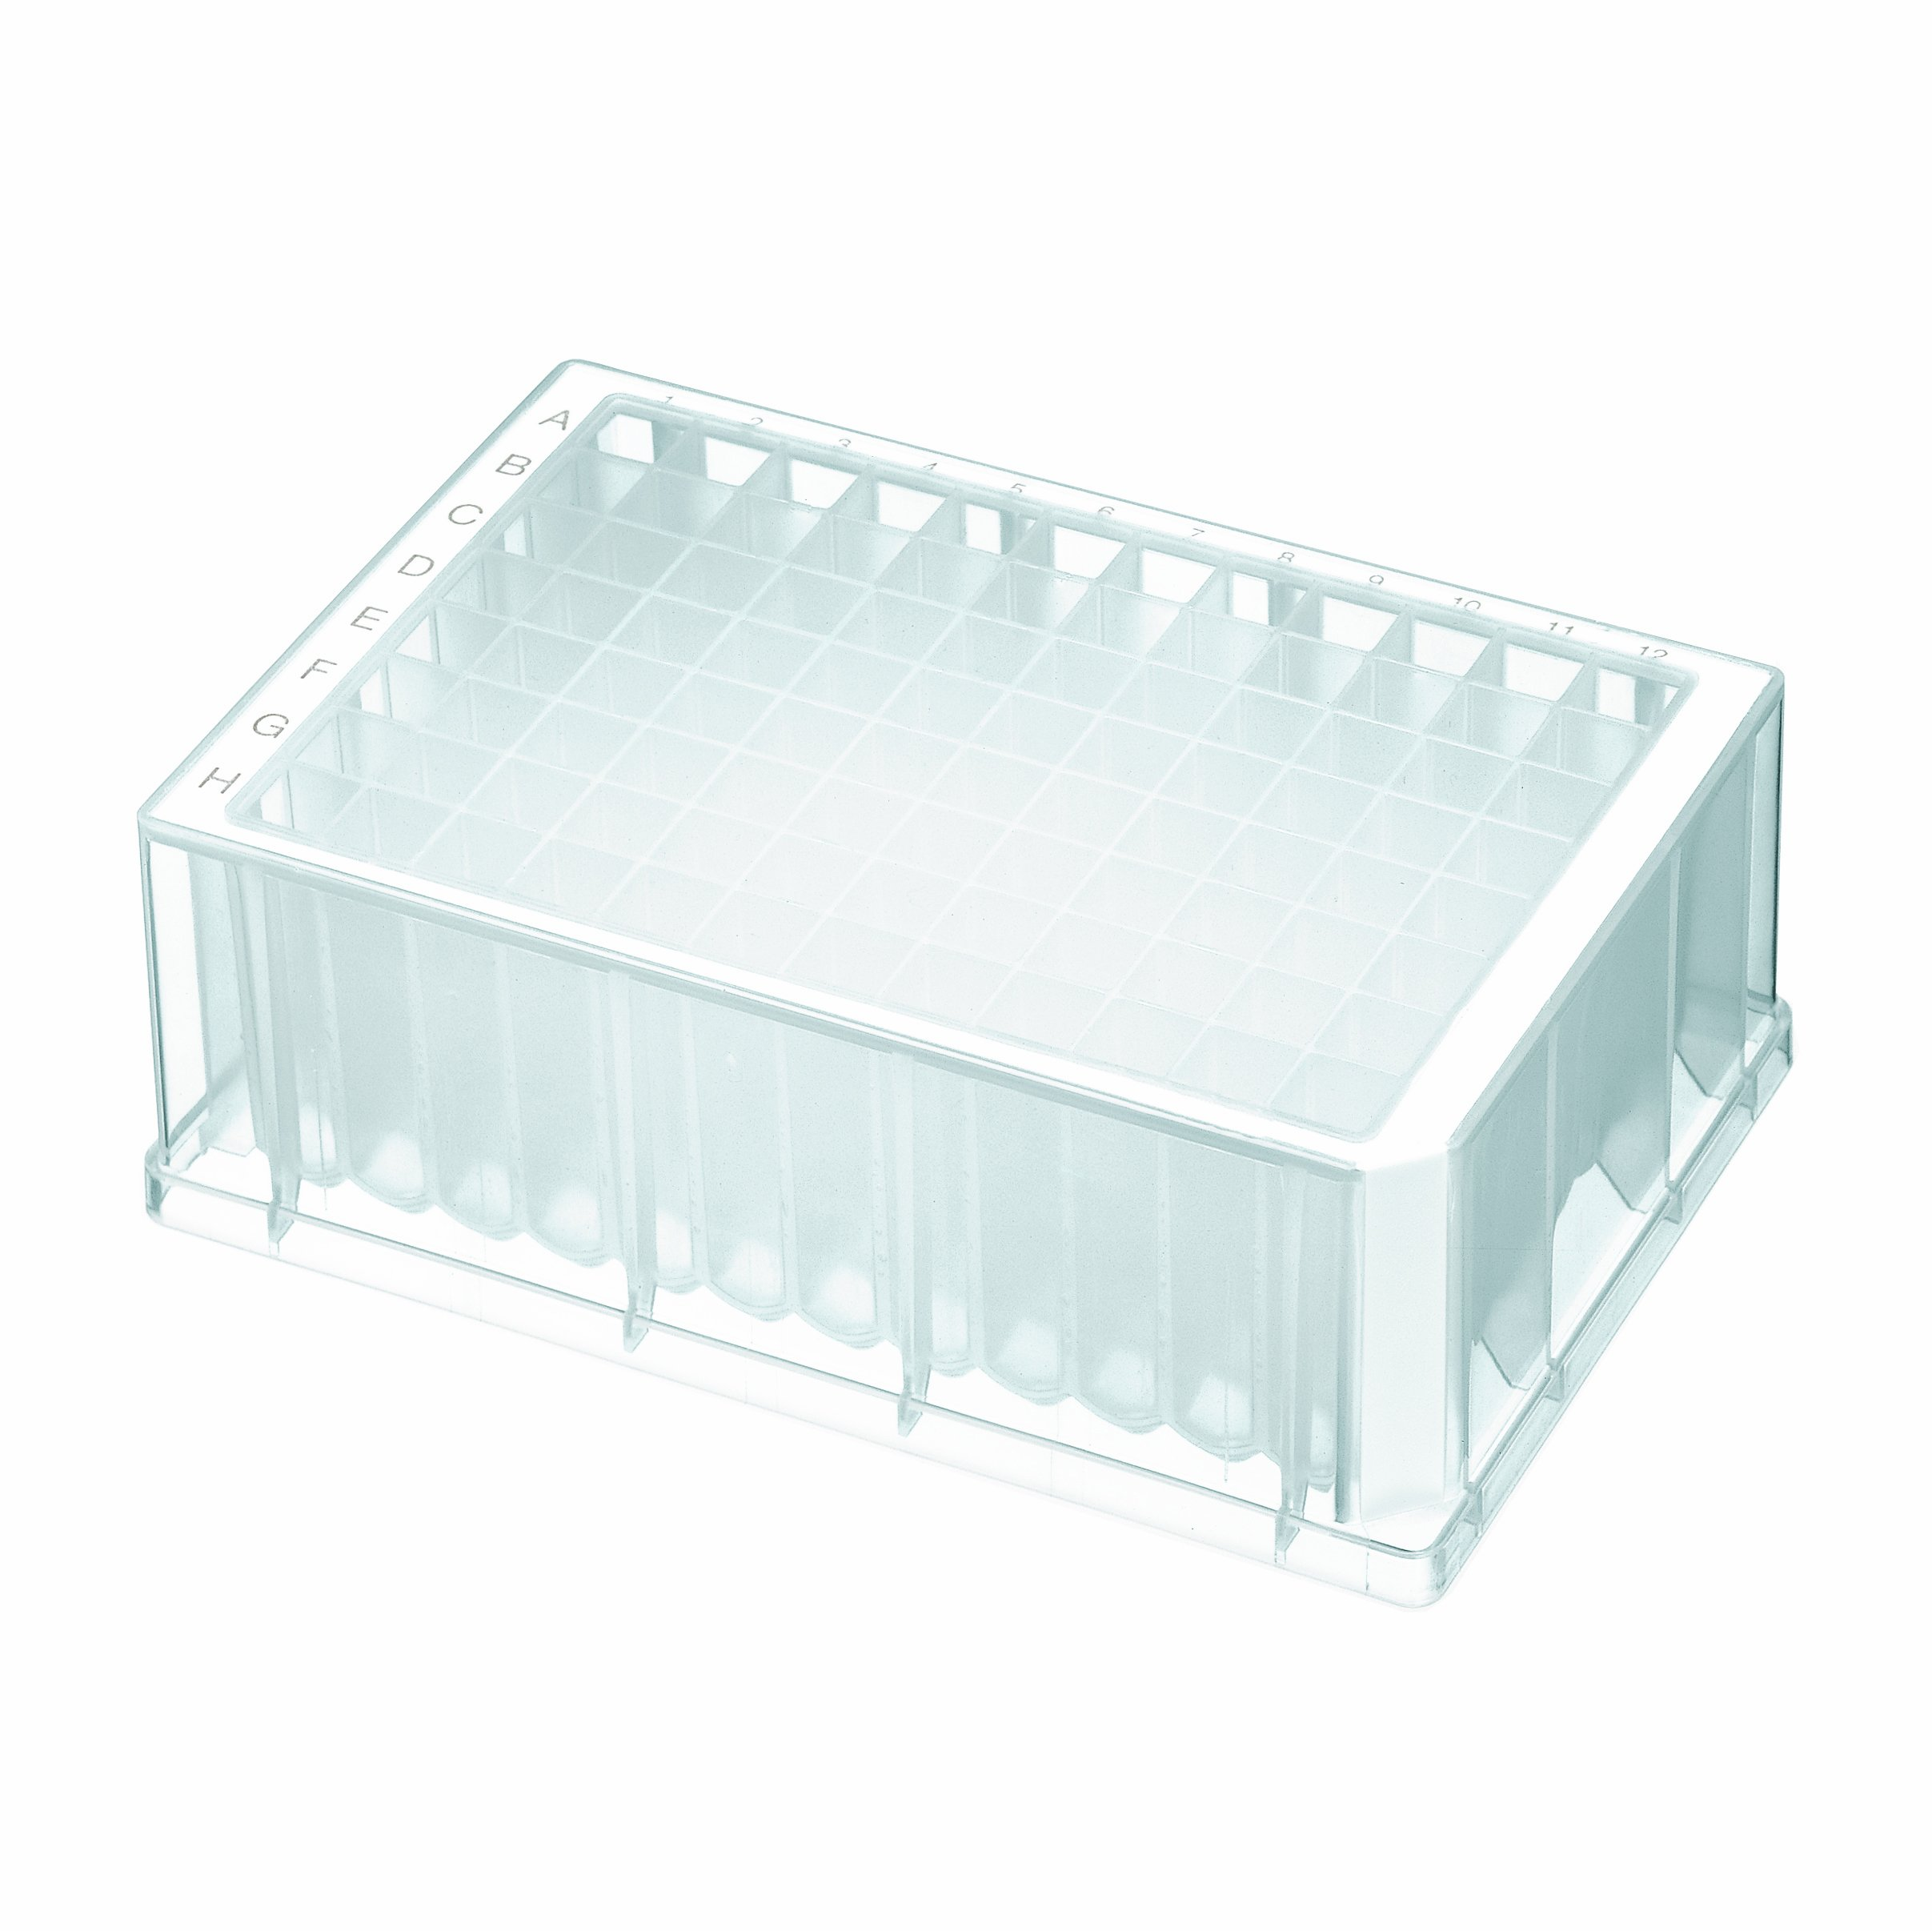 Axygen P-2ML-SQ-C-S Deep Well 96-Well x 2mL Assay Storage Microplate with Square Wells, Clear PP, Sterile (25/Case) by Axygen